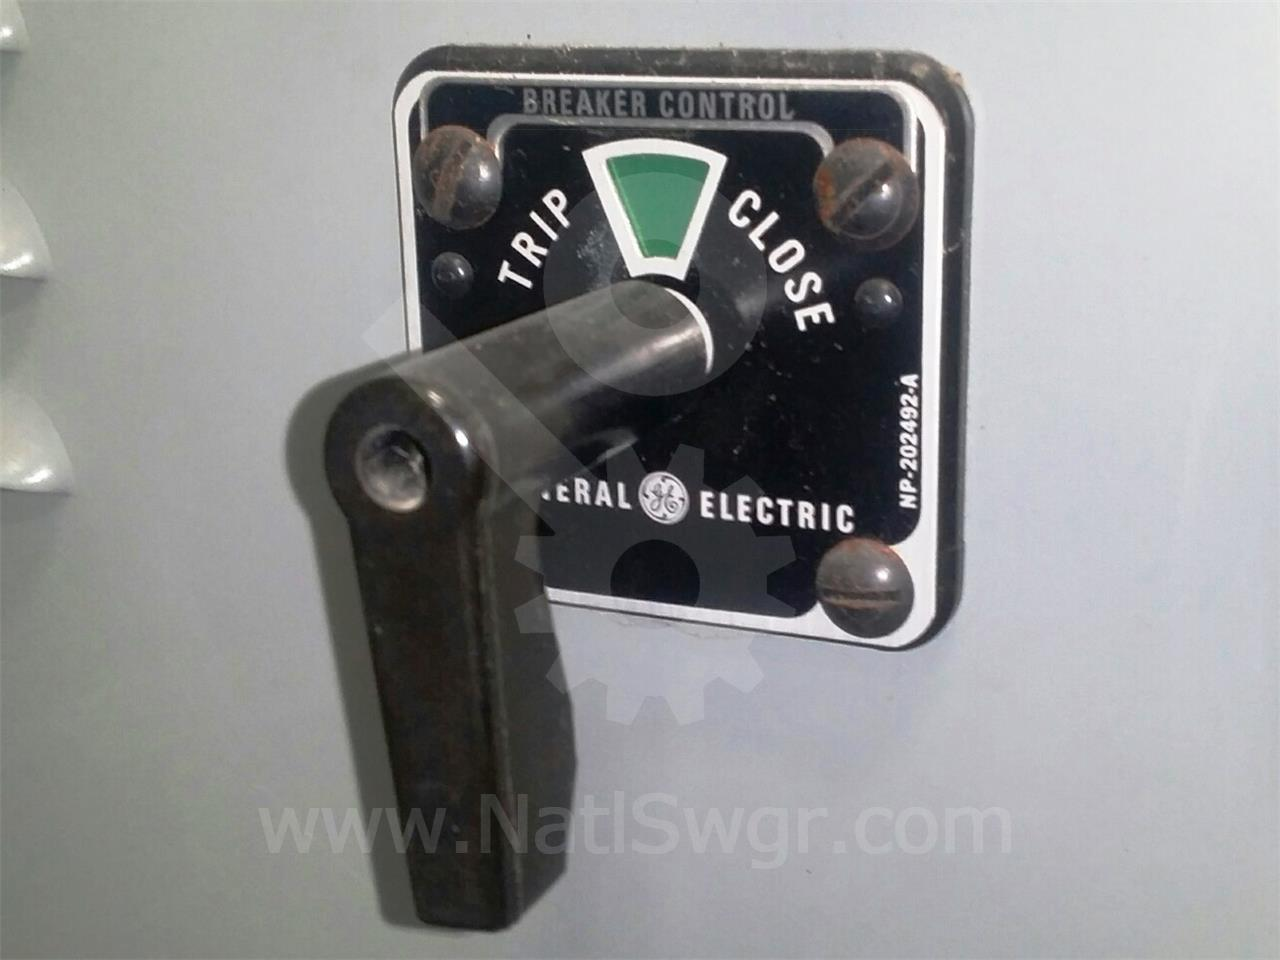 GE SBM CIRCUIT BREAKER CONTROL SWITCH